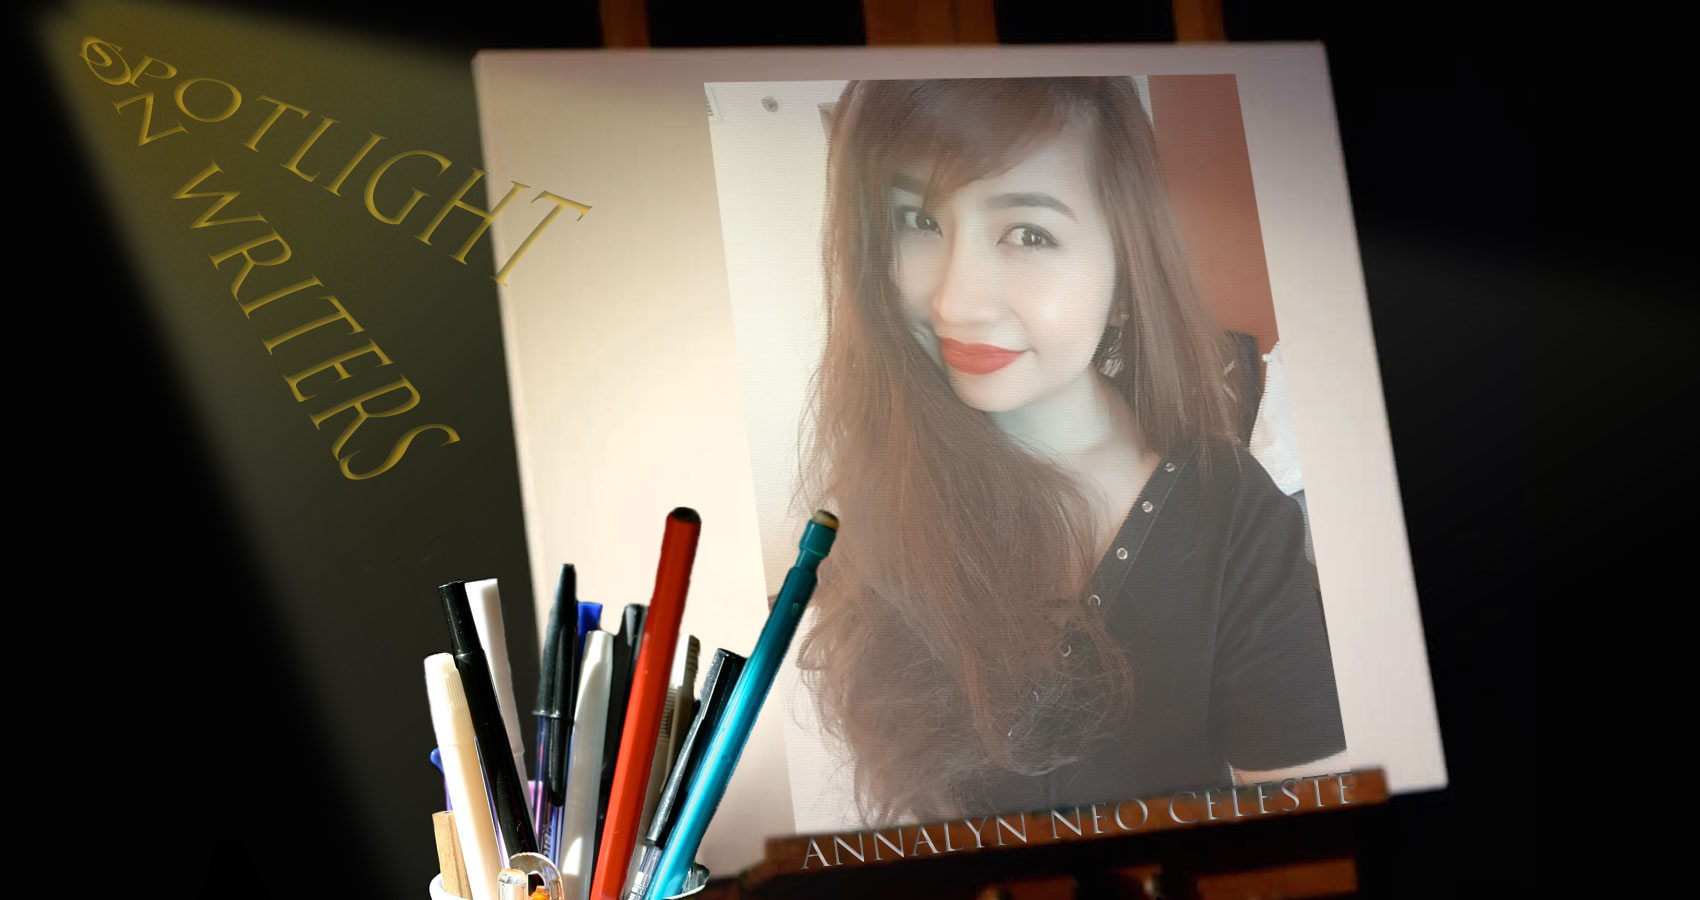 Spotlight On Writers - Annalyn Neo Celeste, interview at Spillwords.com